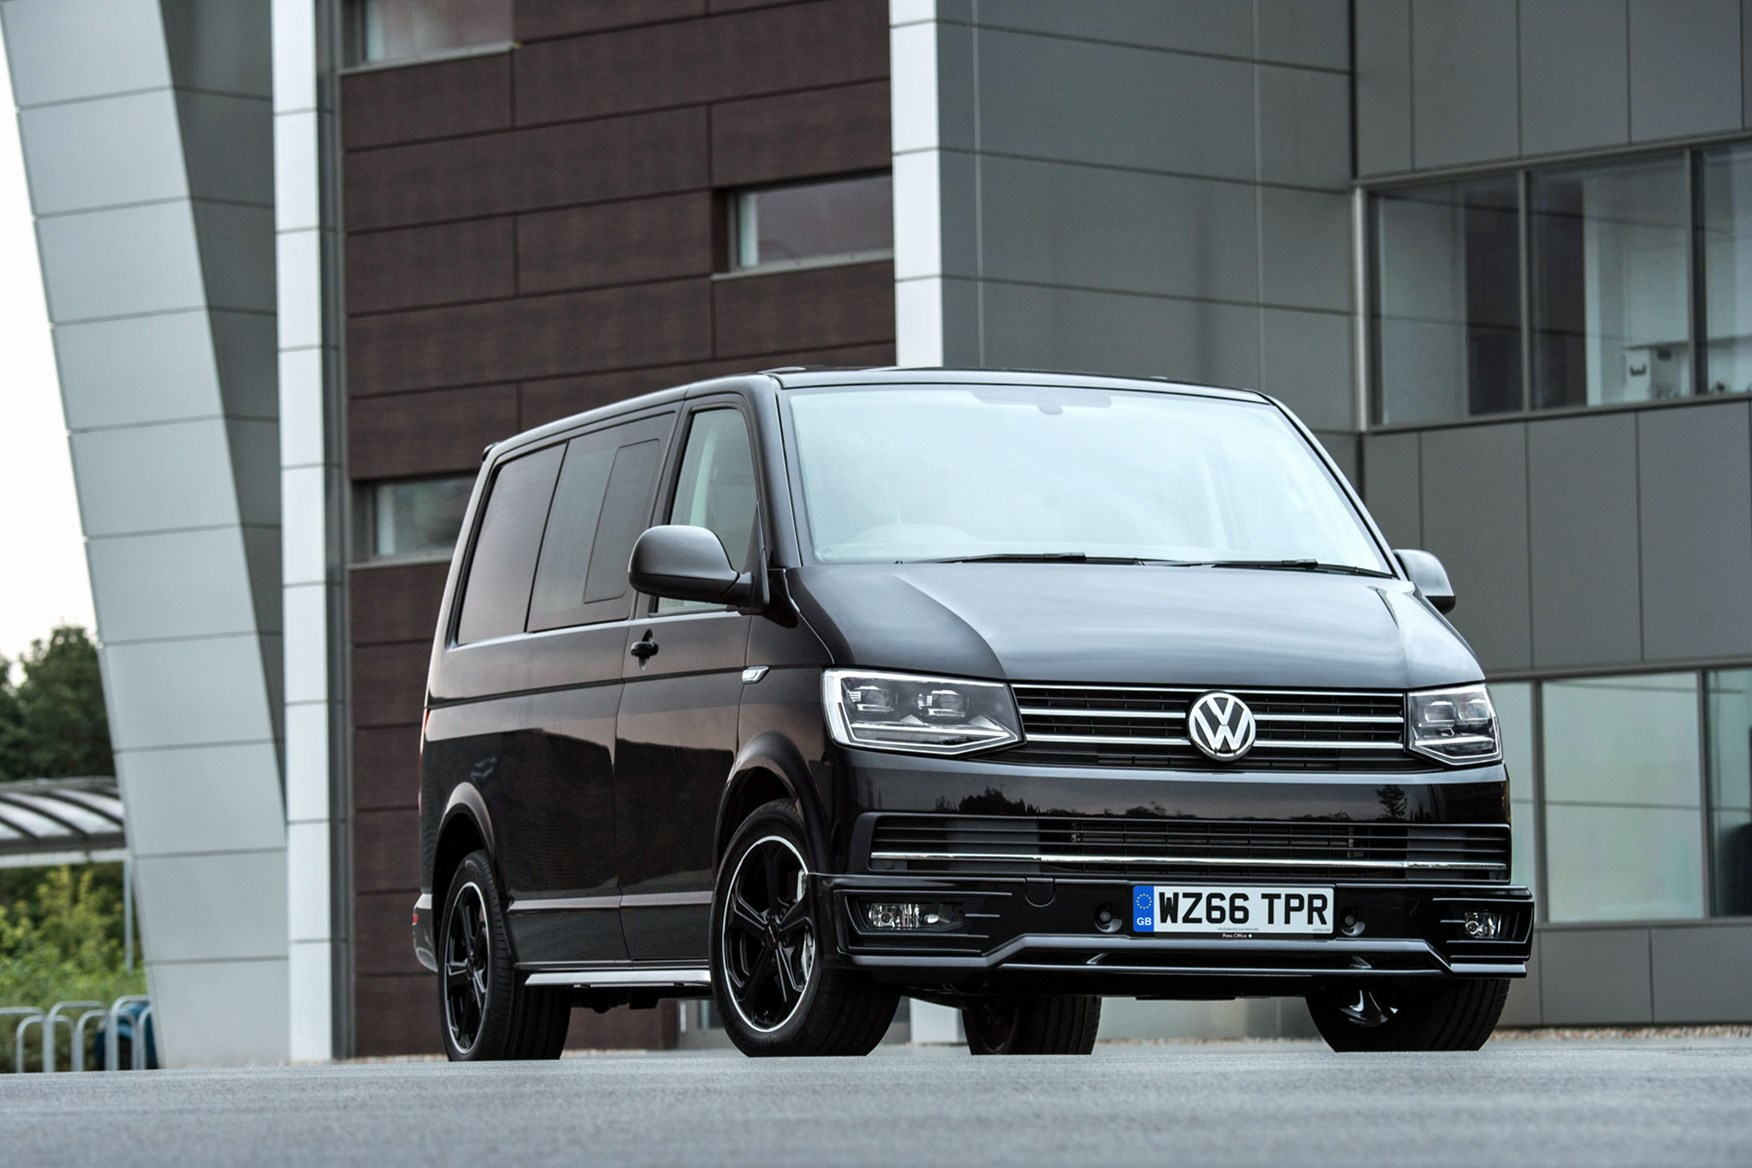 VW Transporter T6 Sportline review - kombi, black, front view